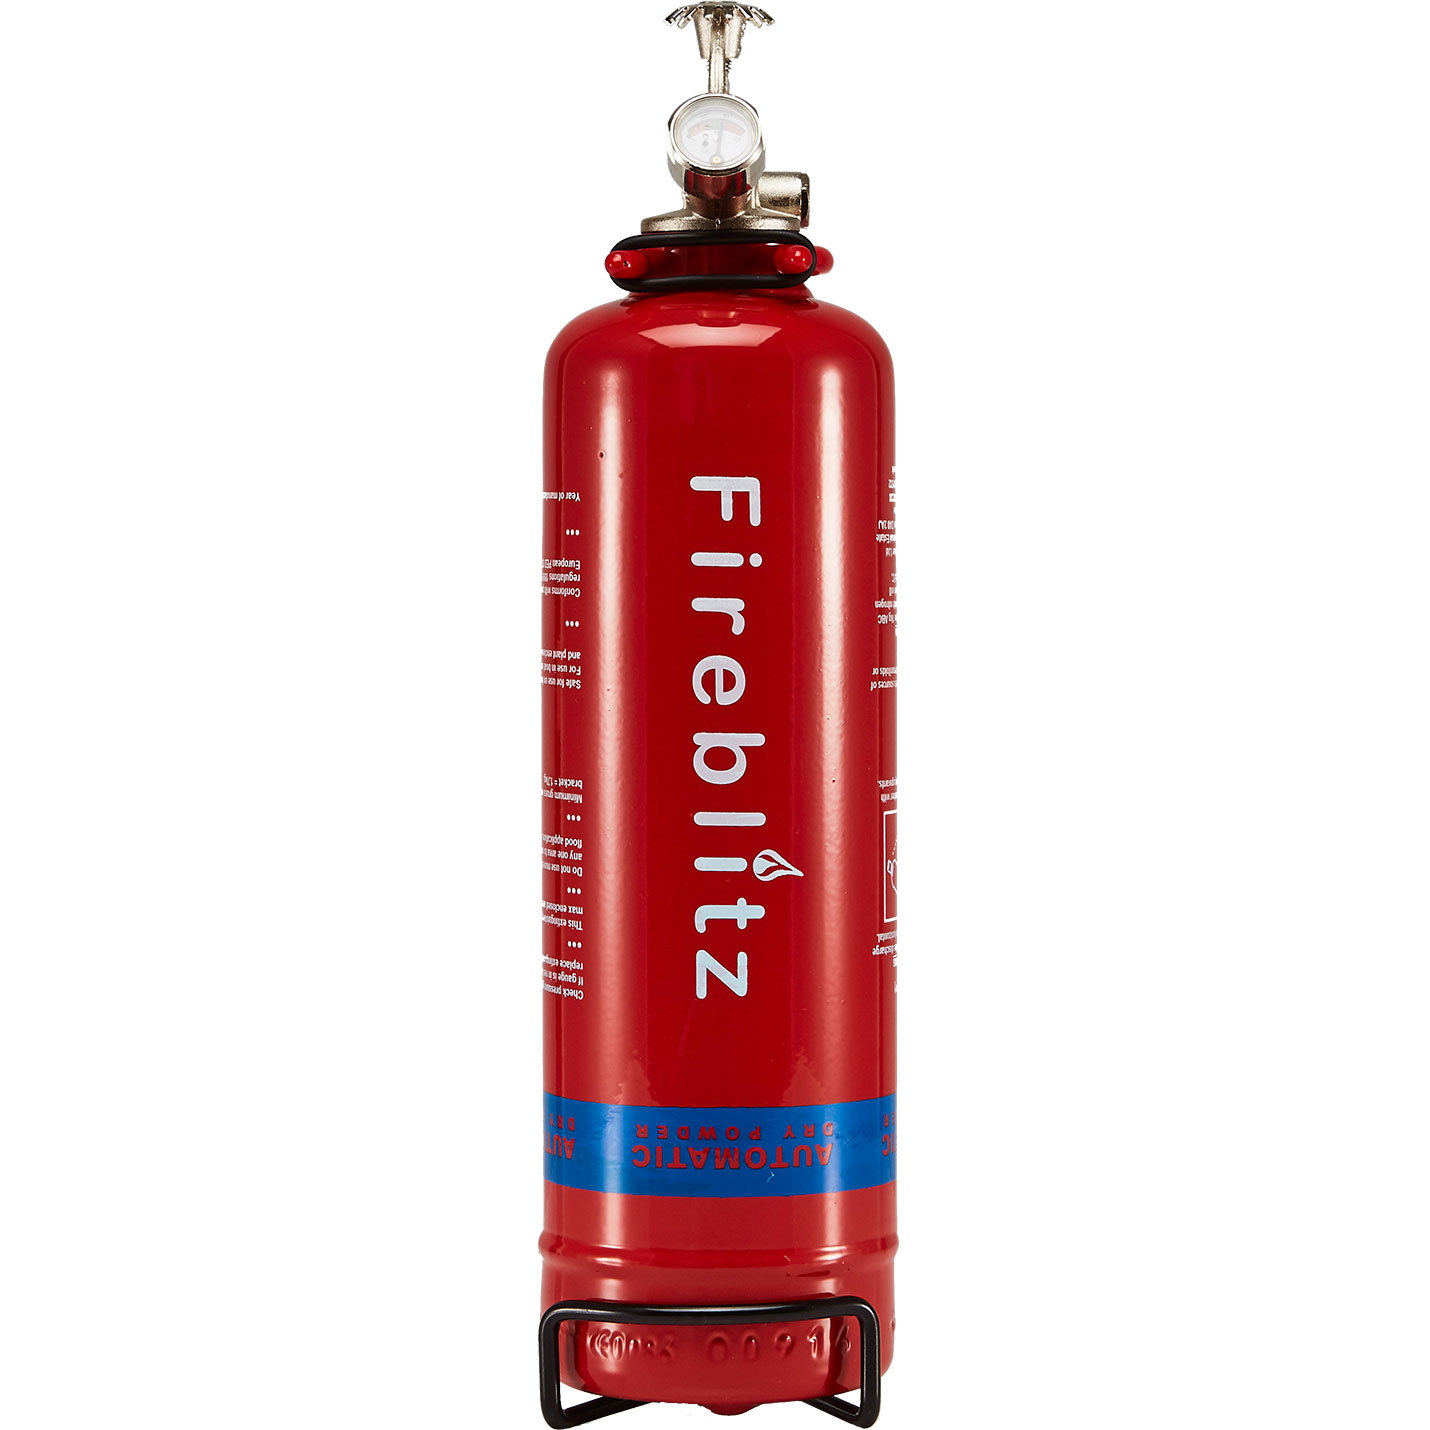 Fully Automatic Fire Extinguisher